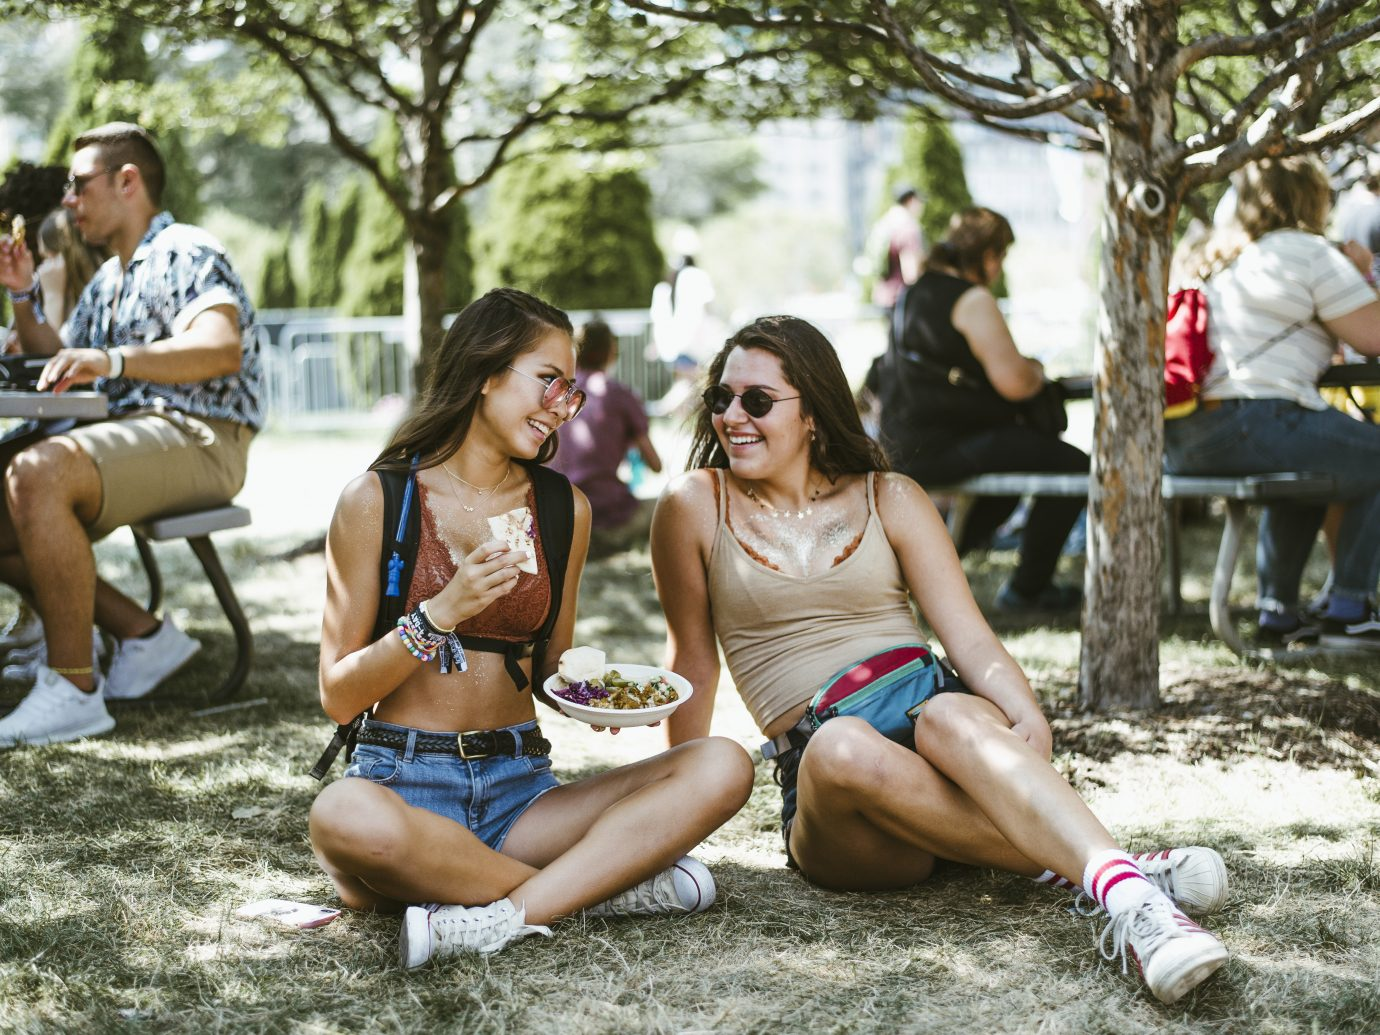 two girls eating falafel on the grass